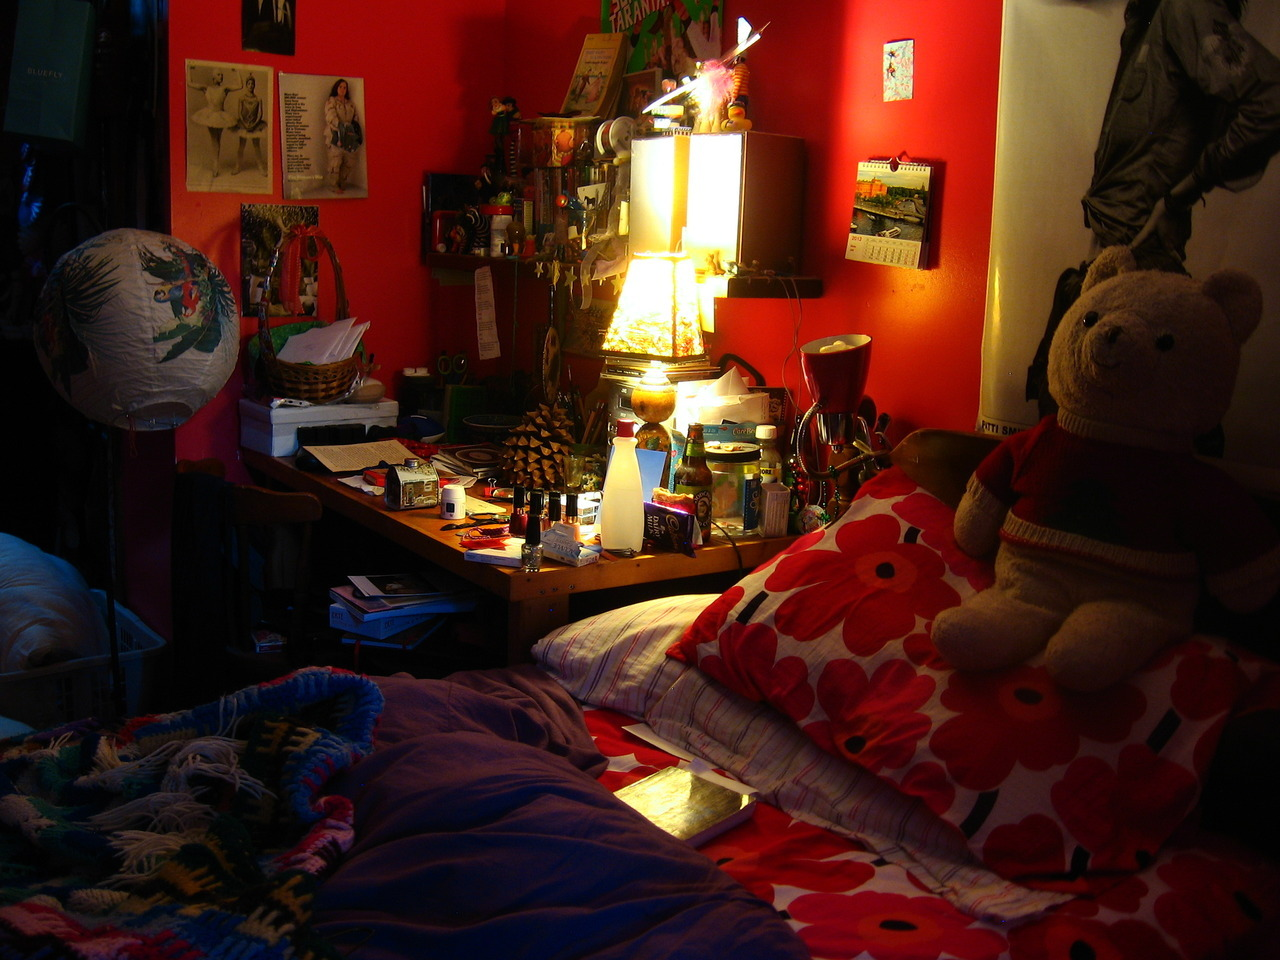 This is my room at present, me at age 22. I just graduated from college in May and I am lately feeling rather nostalgic since I am only here for the summer before I begin my adulthood for real. This is the last time I will live in this room, with all the stuff I've collected over the years. This is the place I feel most at home, compared to anywhere else. I will miss it for sure, and I'm glad I documented it before I move.—darlingdaintyfoot Adulthood never really begins. For certain people, myself included, adulthood is like a mythical unicorn or a UFO abduction, something you hear about but never experience for yourself.